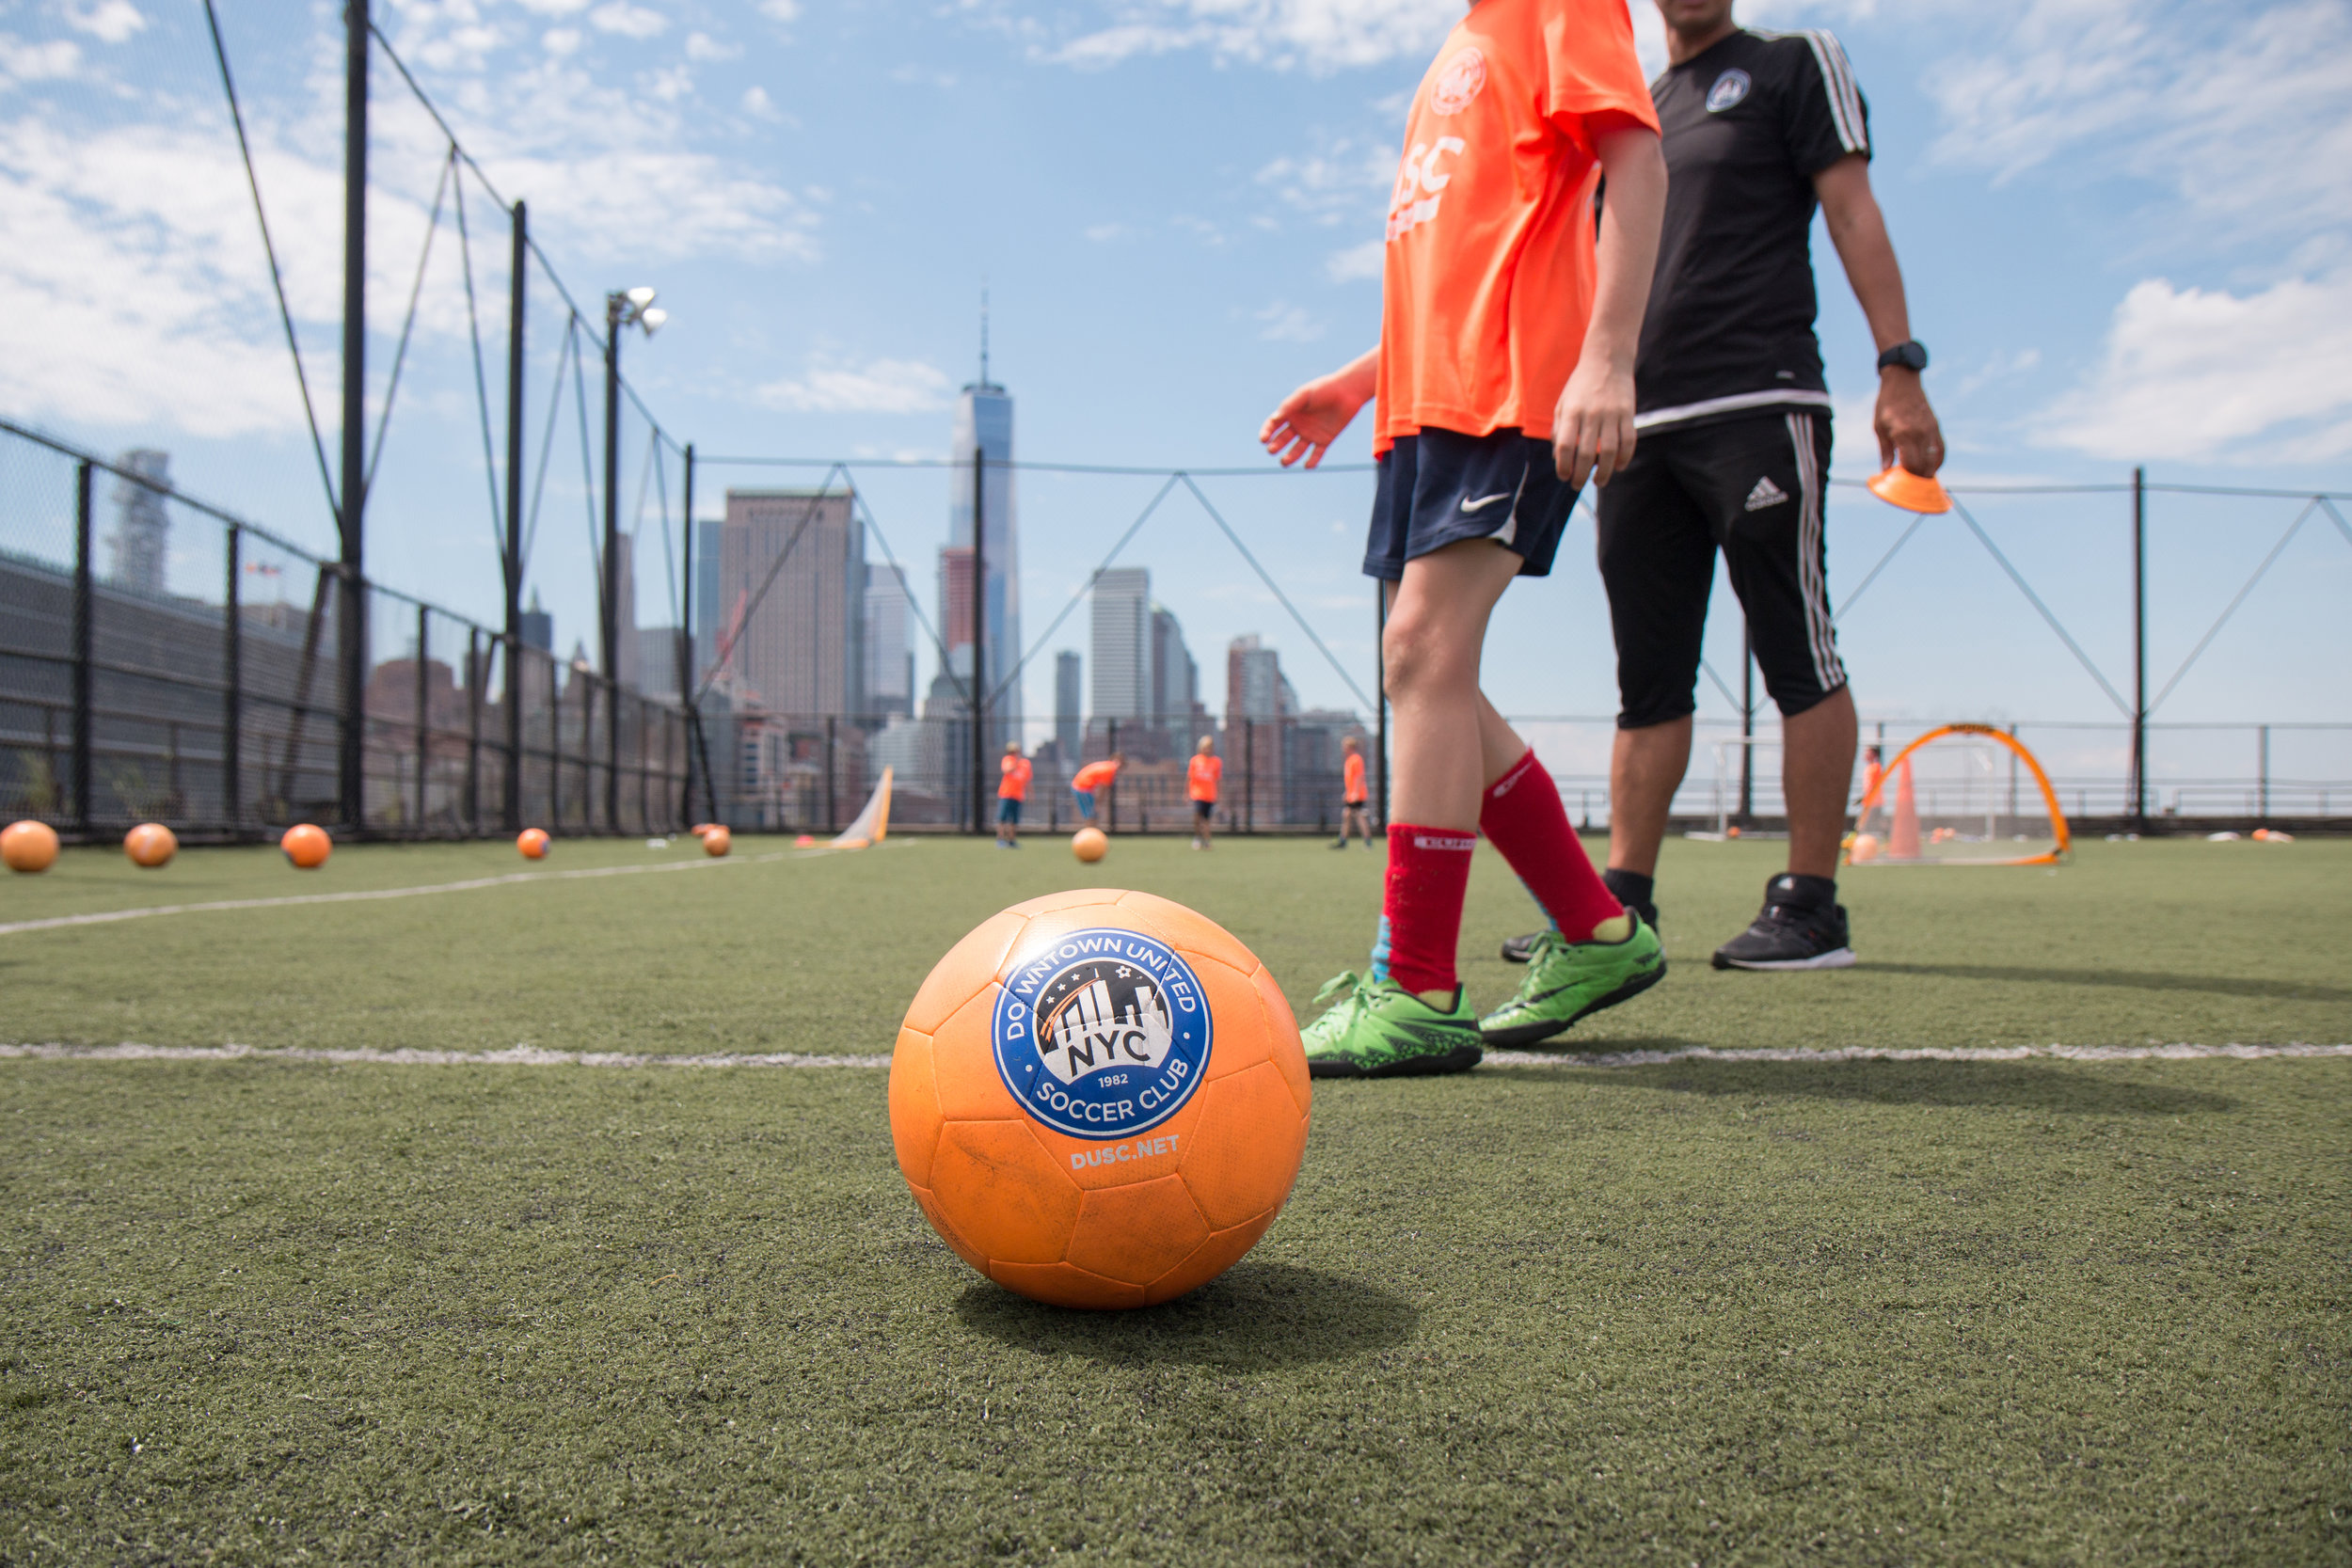 DUSC-downtown-united-soccer-club-youth-new-york-city-summer-camp–17–02.jpg